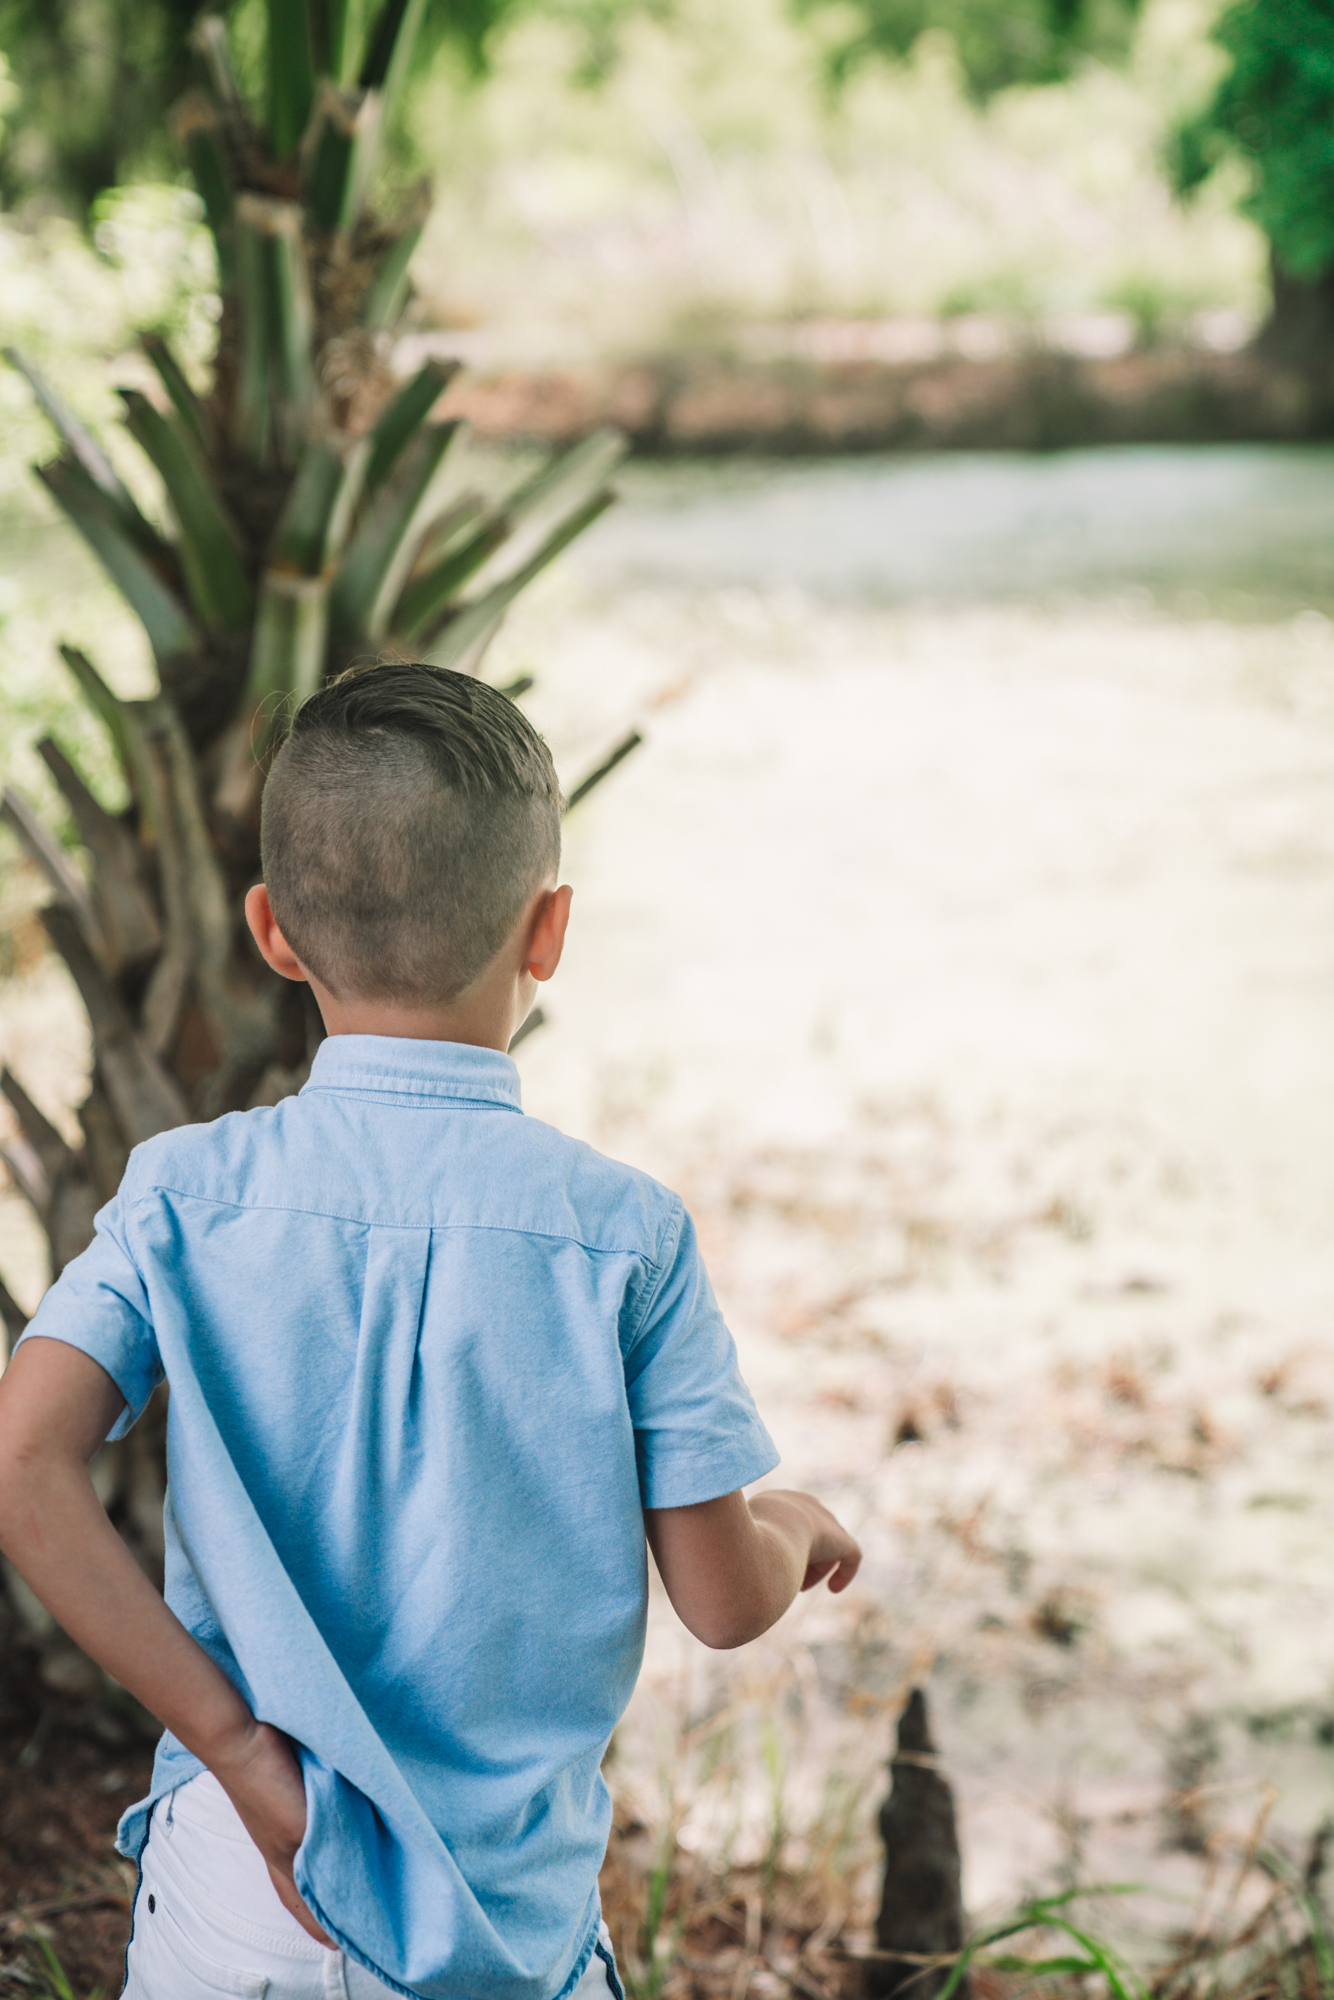 a little boy in a blue shirt looks out at the swamp landscape.